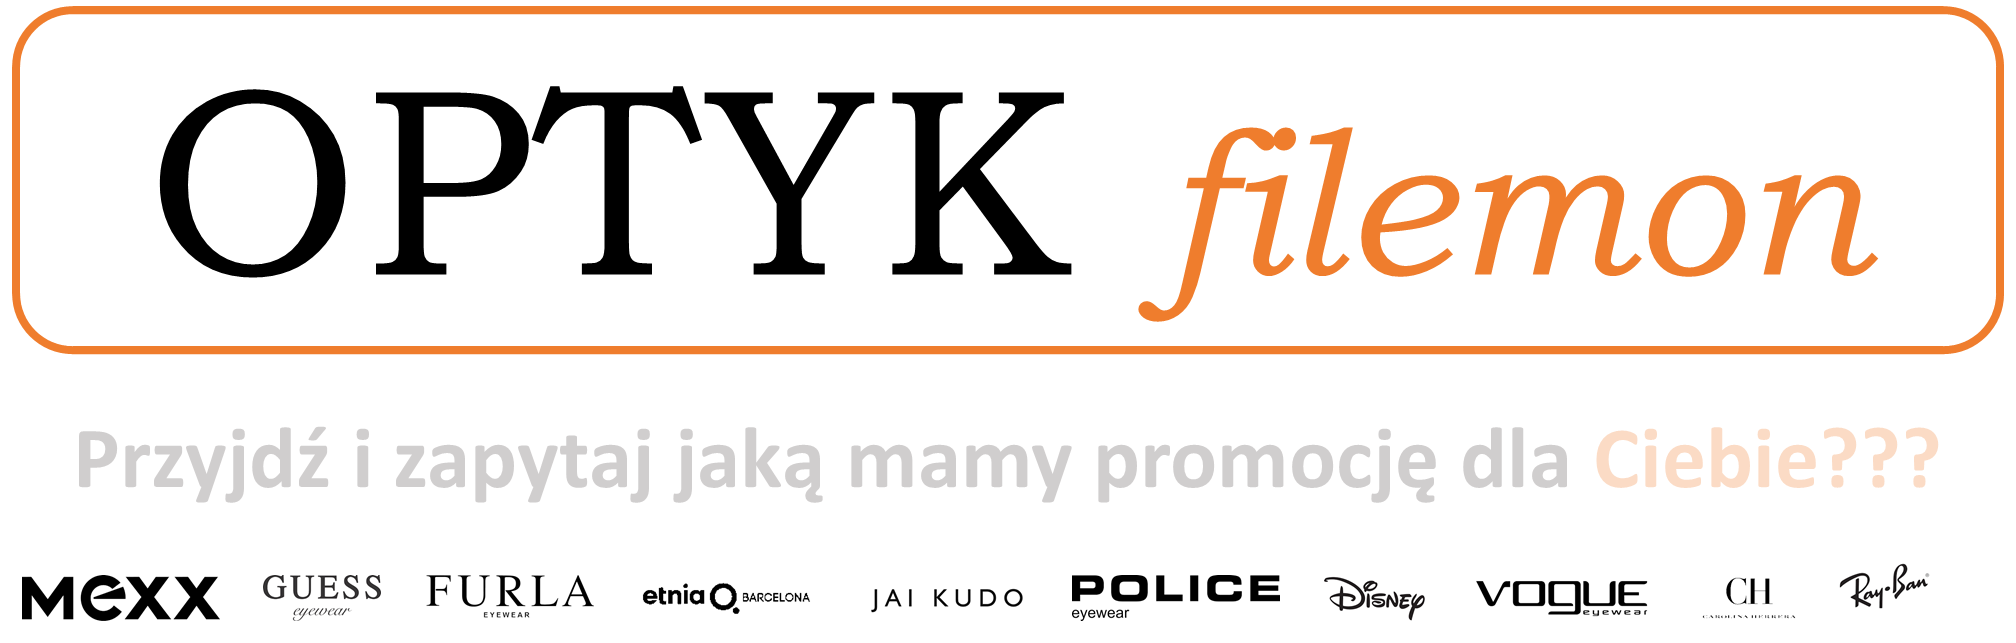 OPTYK FILEMON logo